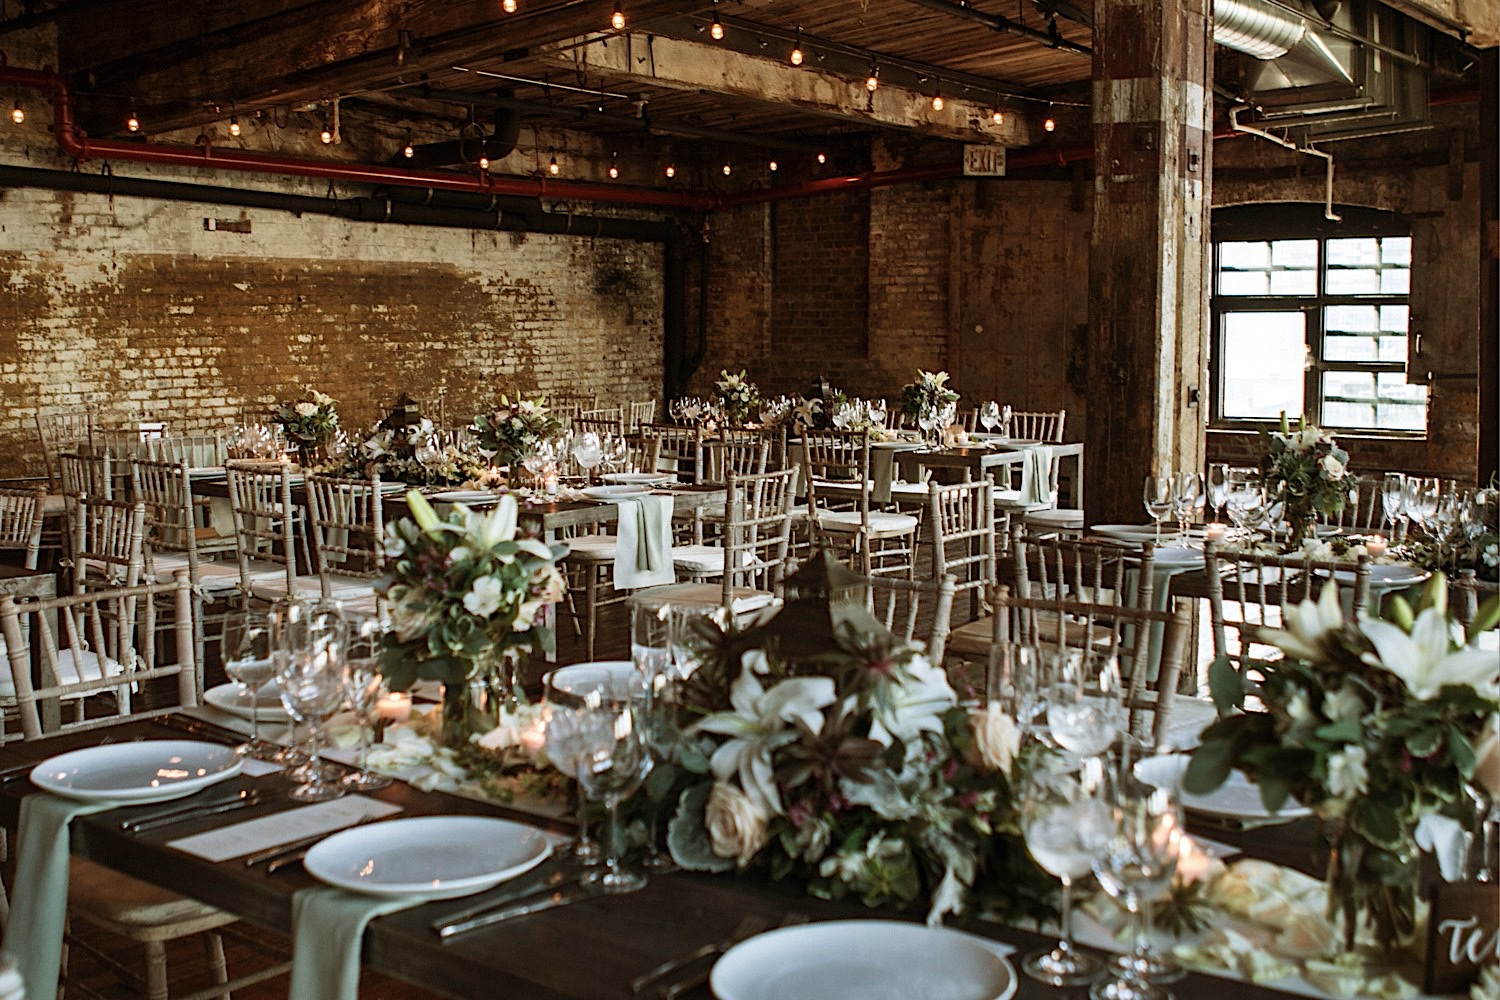 Floral tablescapes at wedding venue Greenpoint Loft in Brooklyn NYC